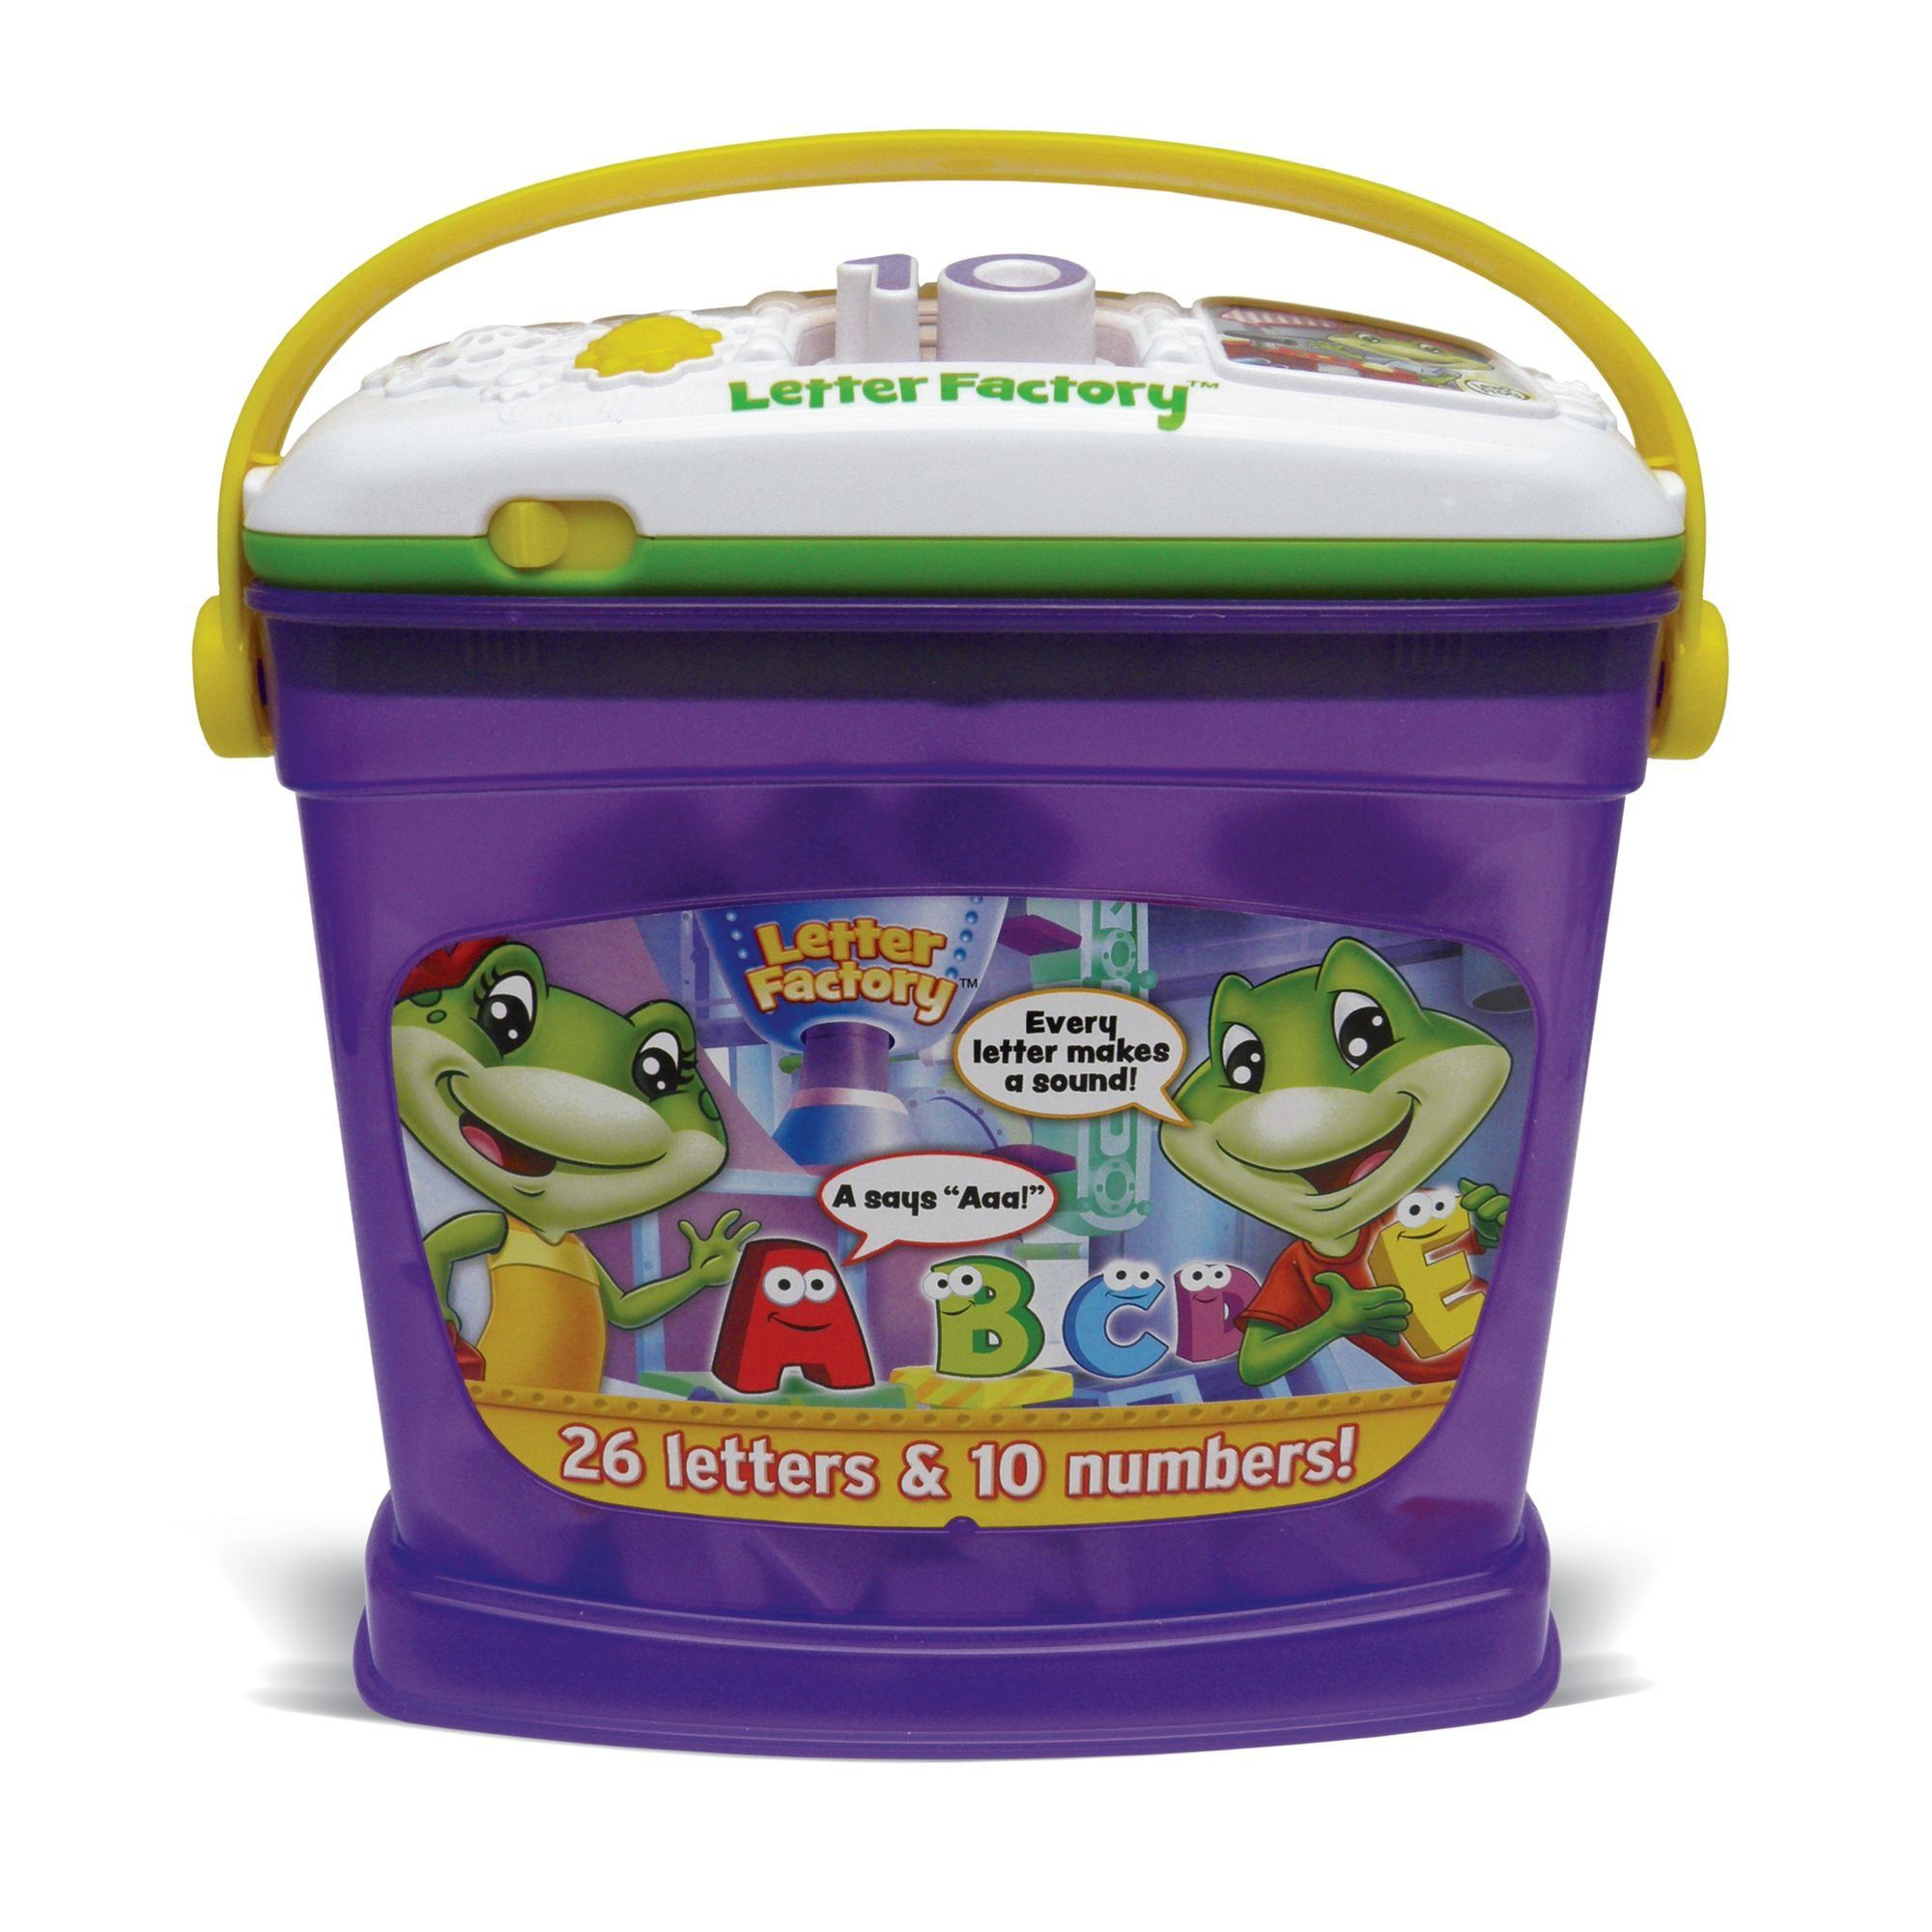 PORTER LeapFrog Letter Factory Phonics and Numbers: Toys & Games